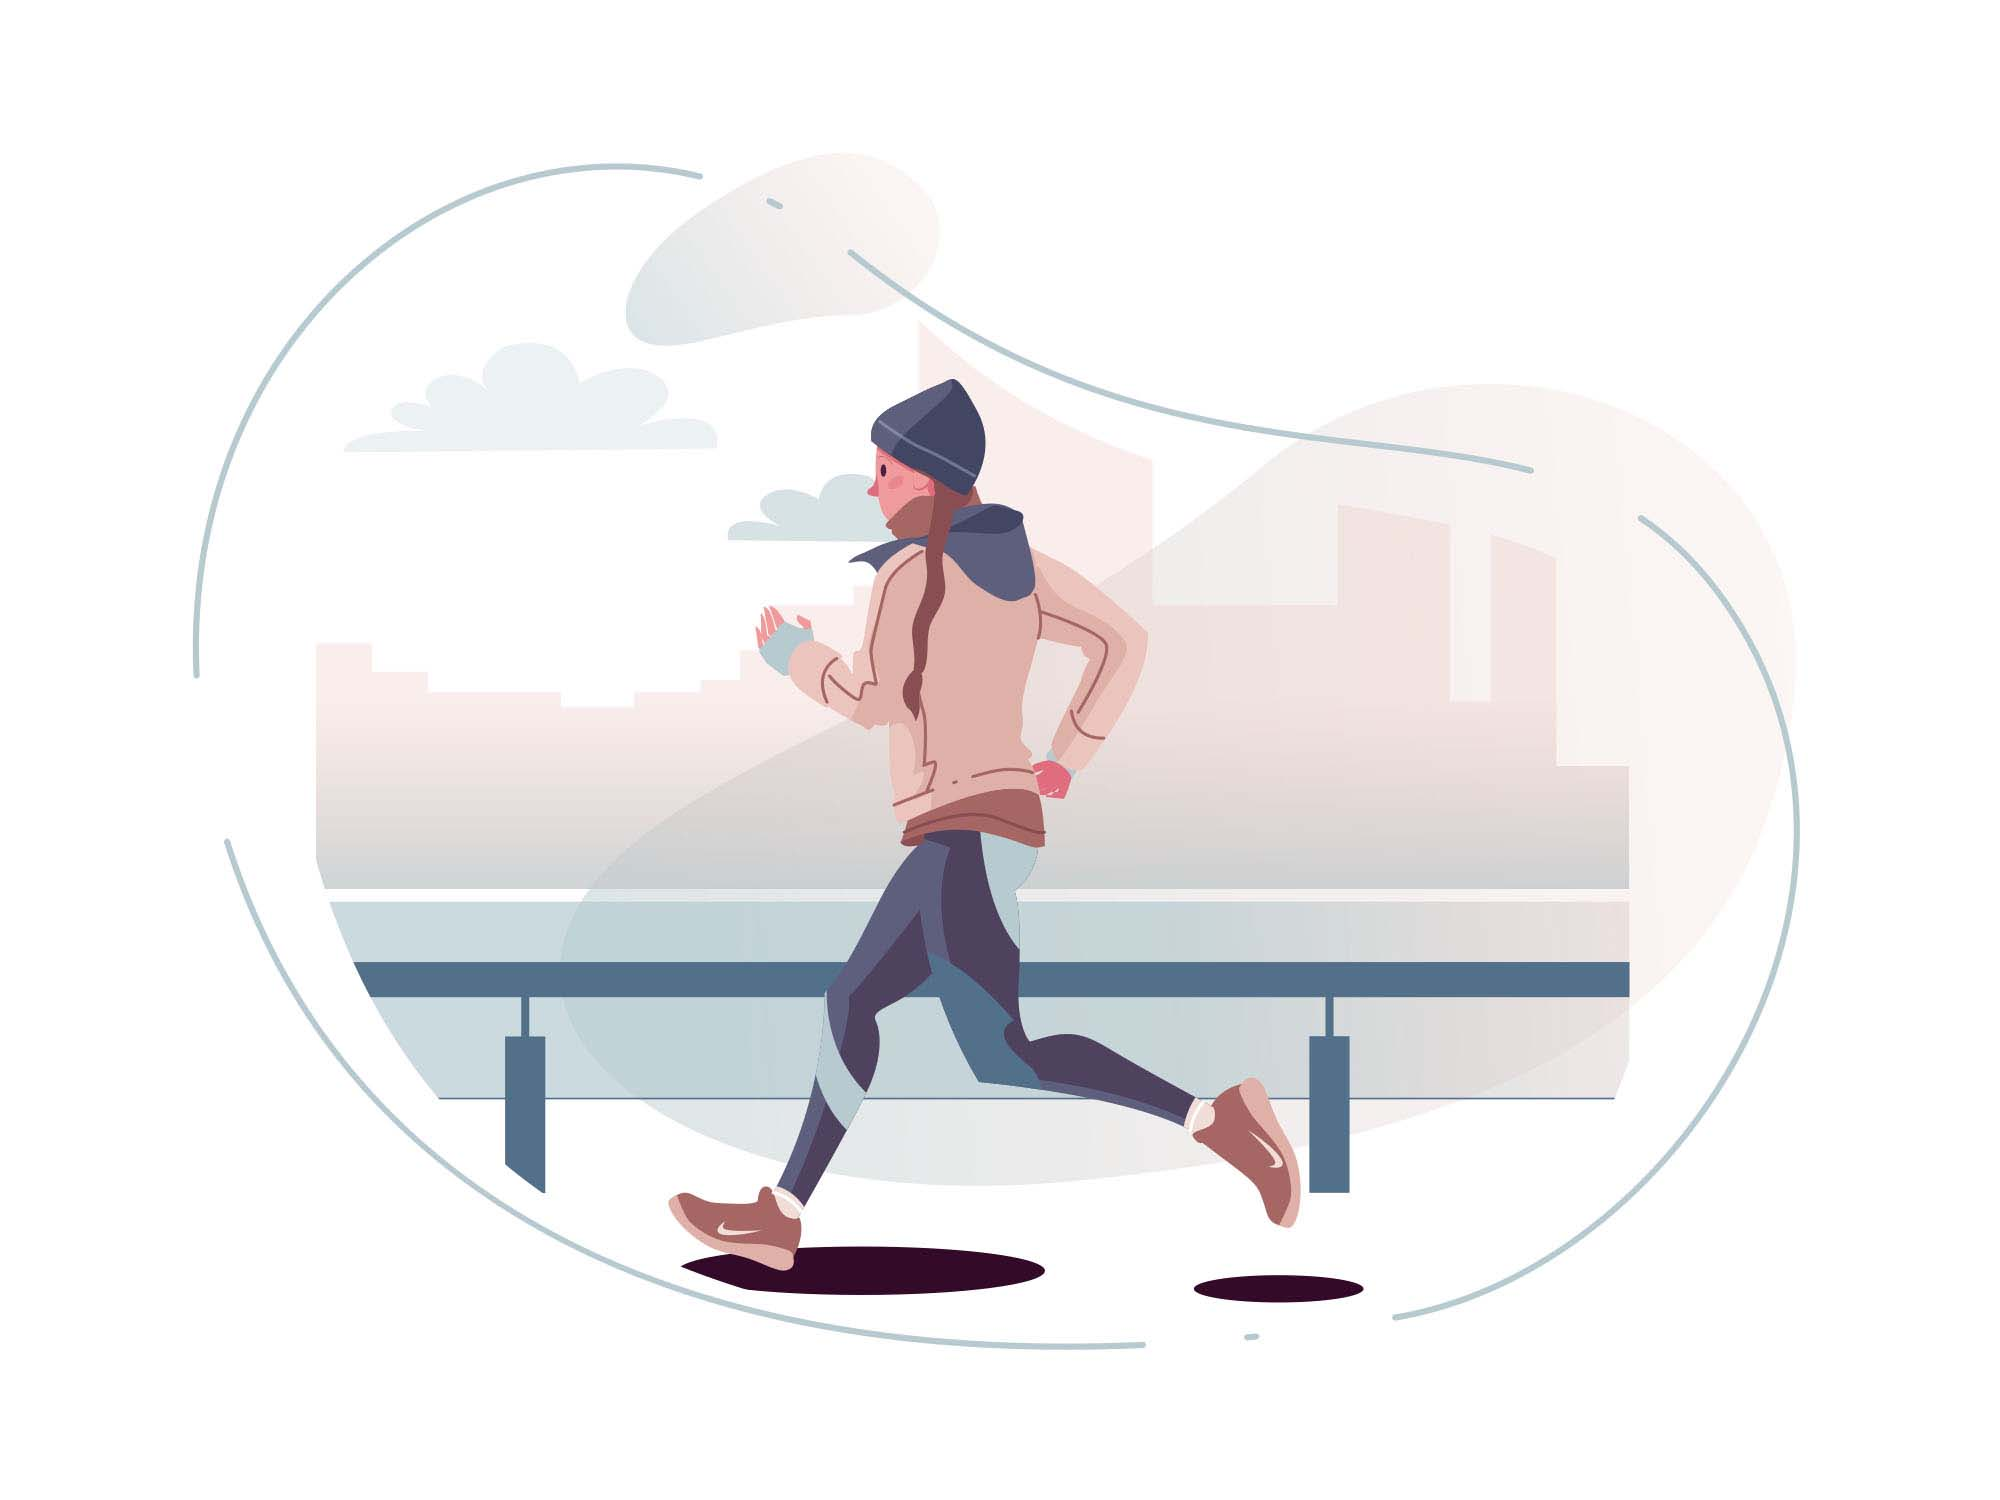 Runner Vector Illustration